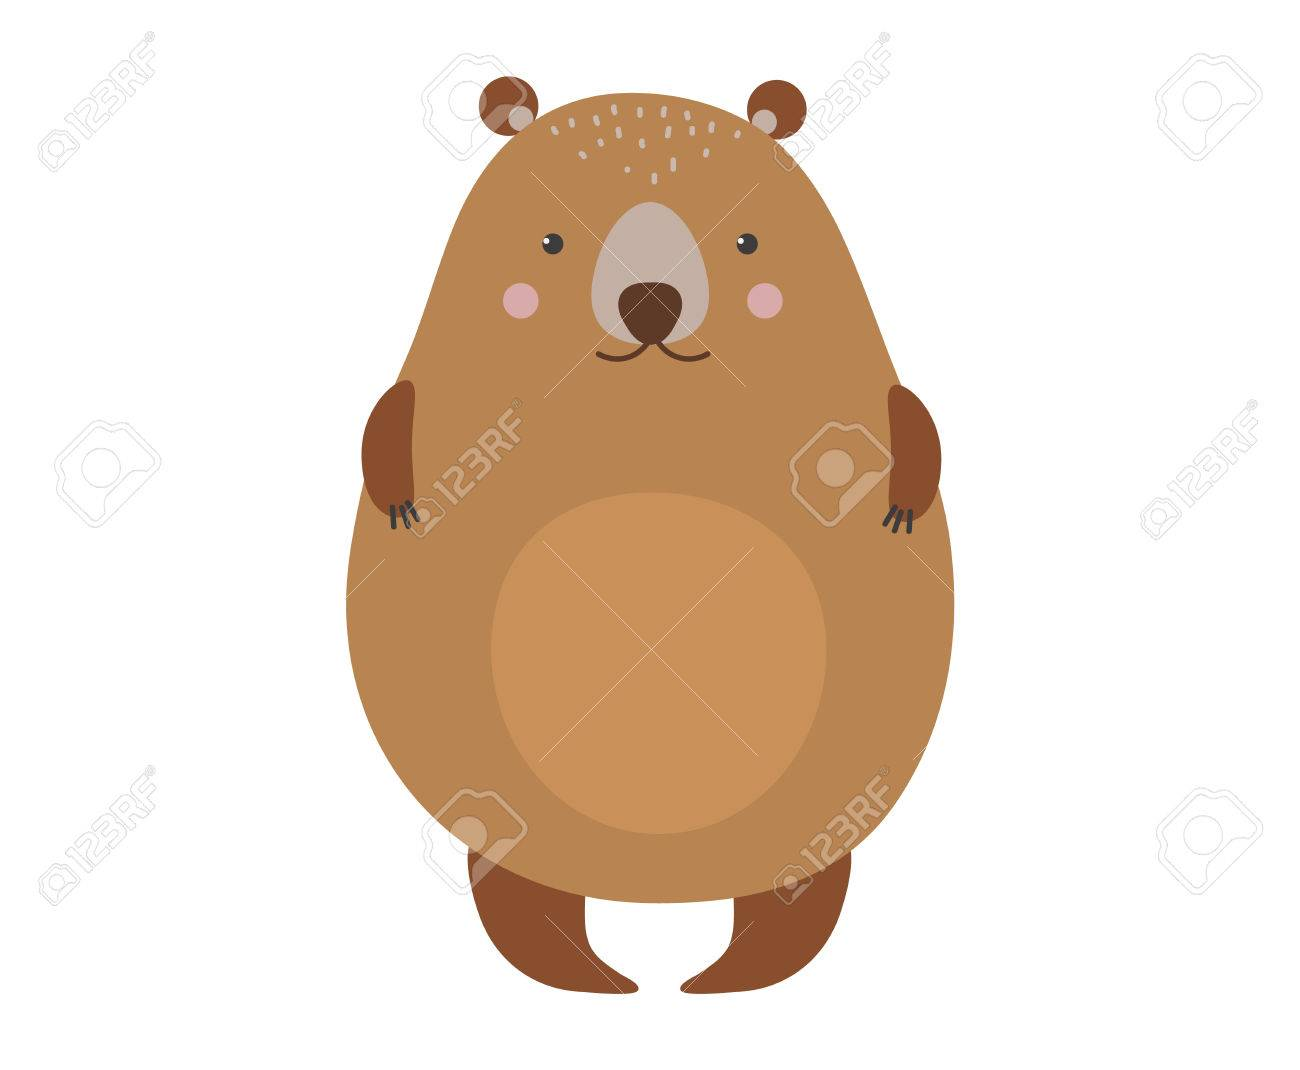 1300x1070 Cute Cartoon Bear Emotions Icon. Brown Character Happy Smiling